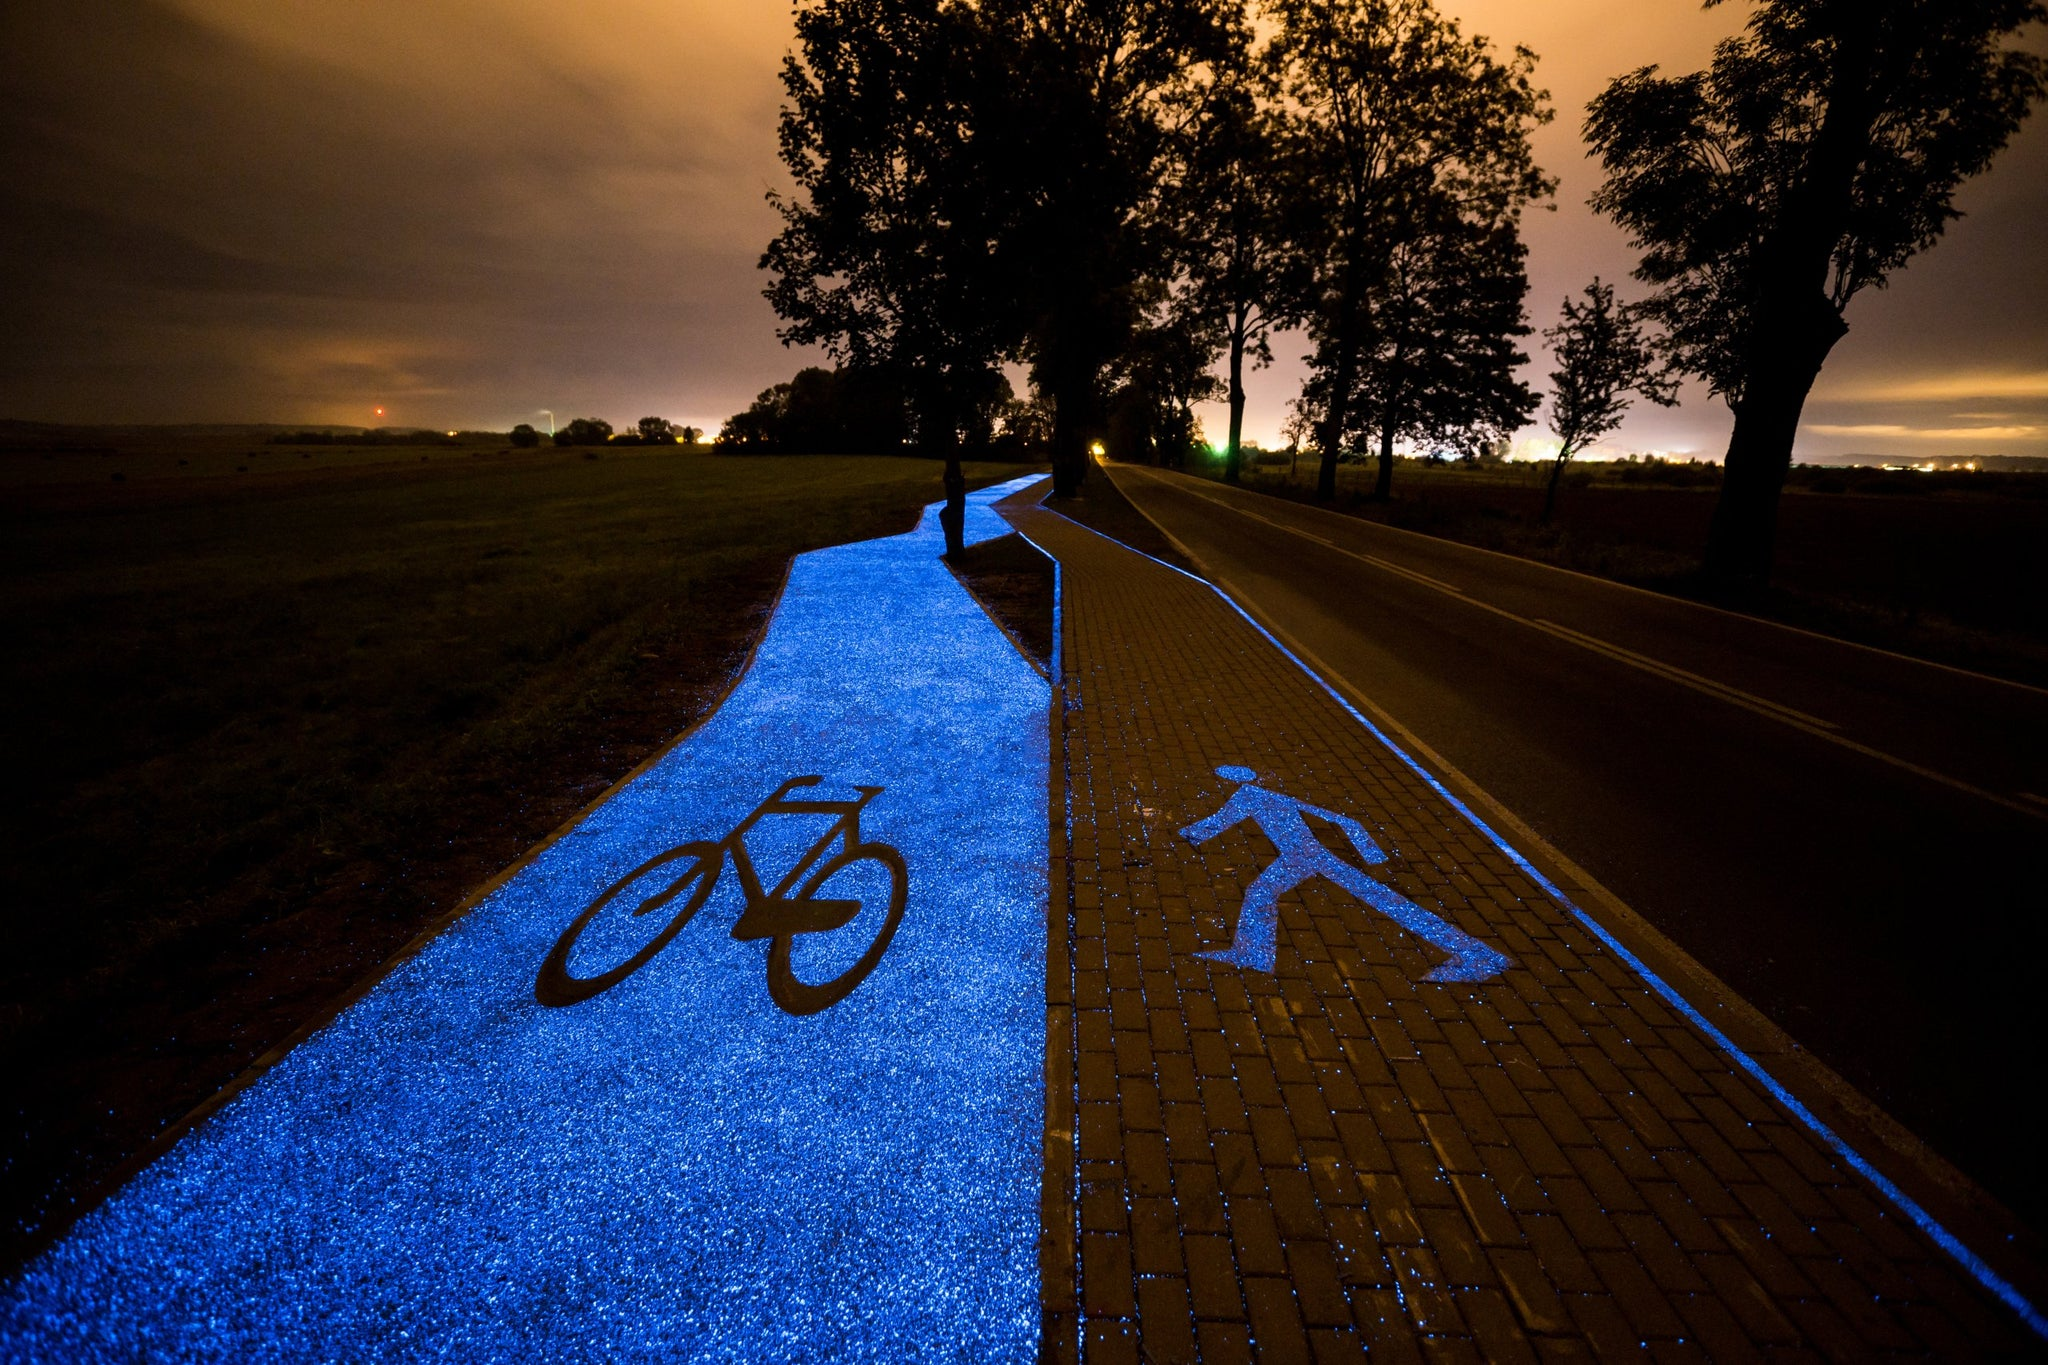 Poland Unveils Glow-In-The-Dark Bicycle Path but free of energy